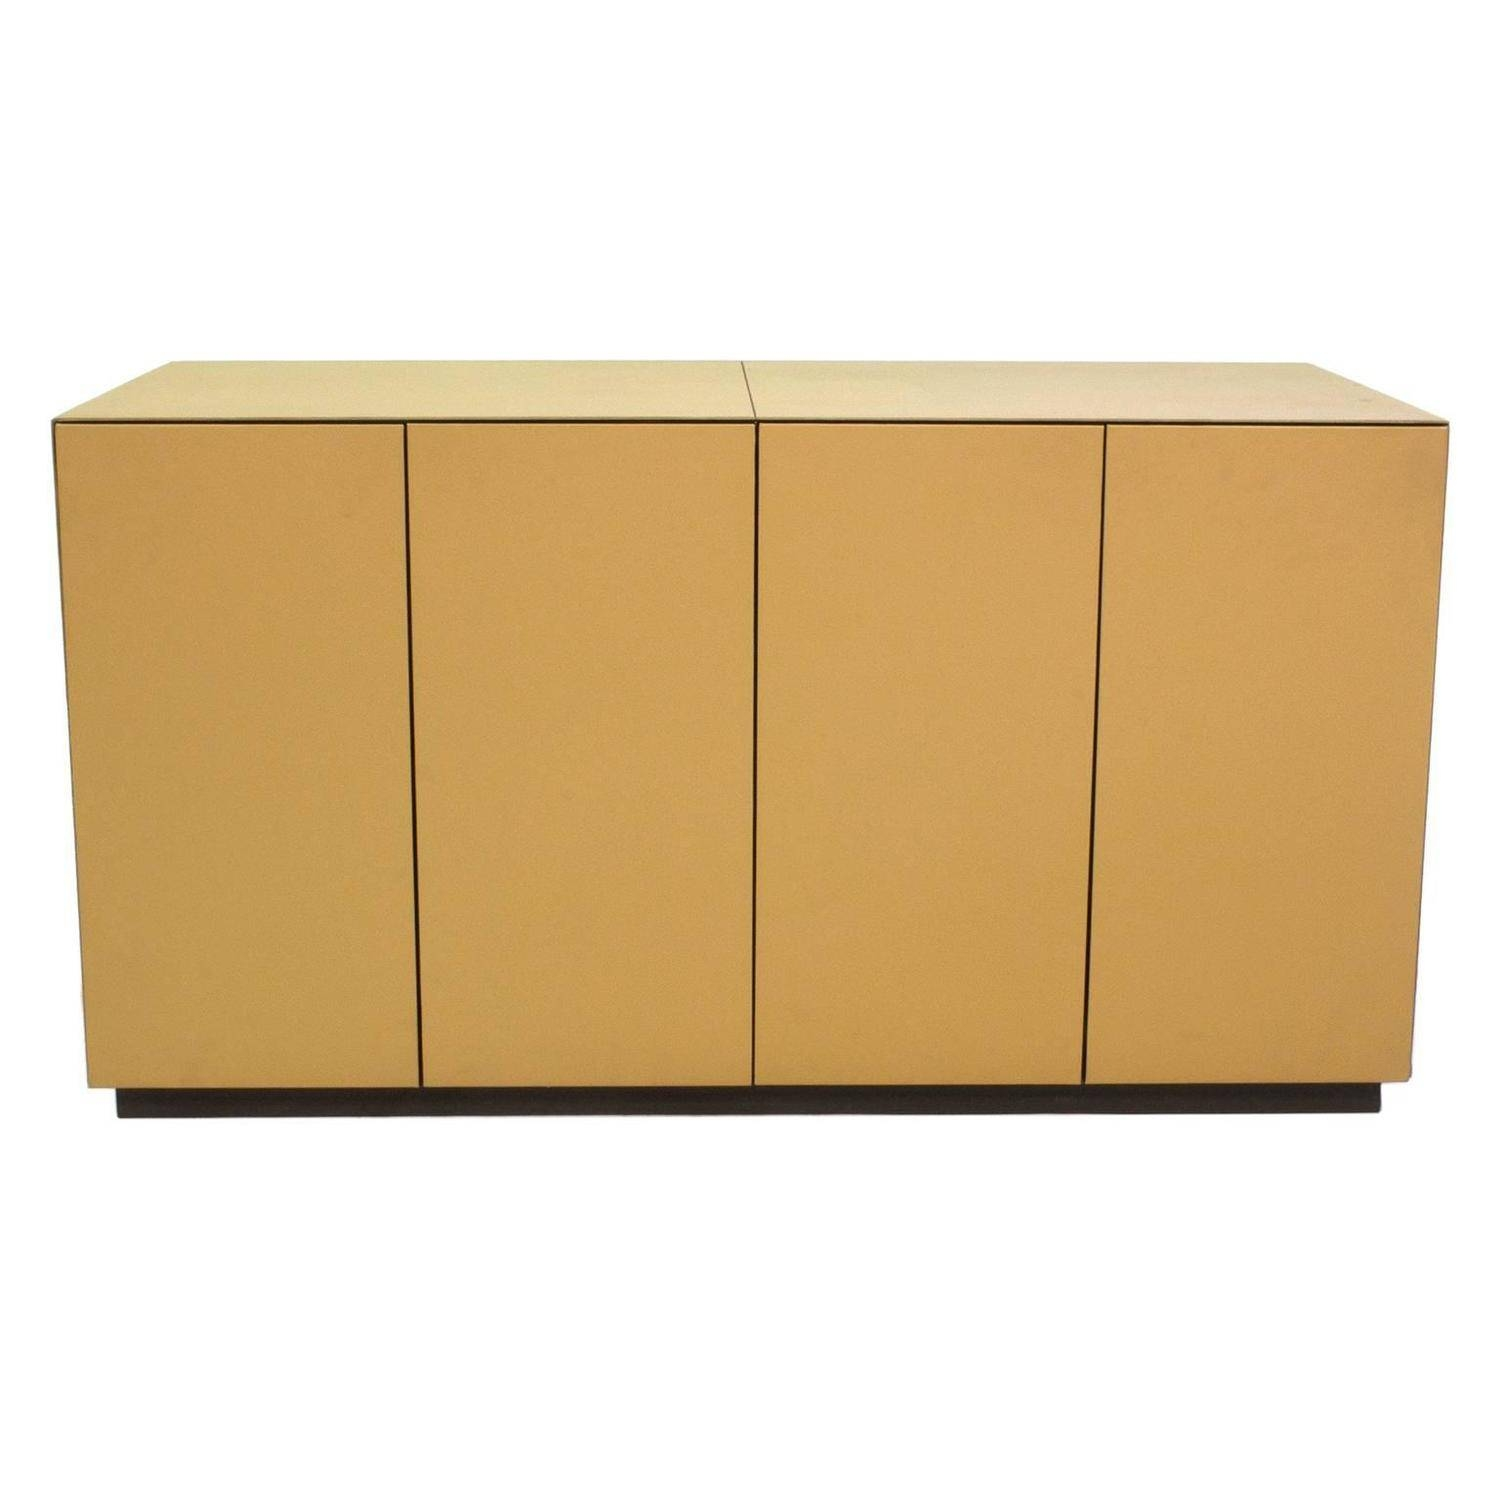 Ceo Cube Small Cabinetmassimo Vignelli For Poltrona Frau Pertaining To Small Sideboard Cabinet (#2 of 20)